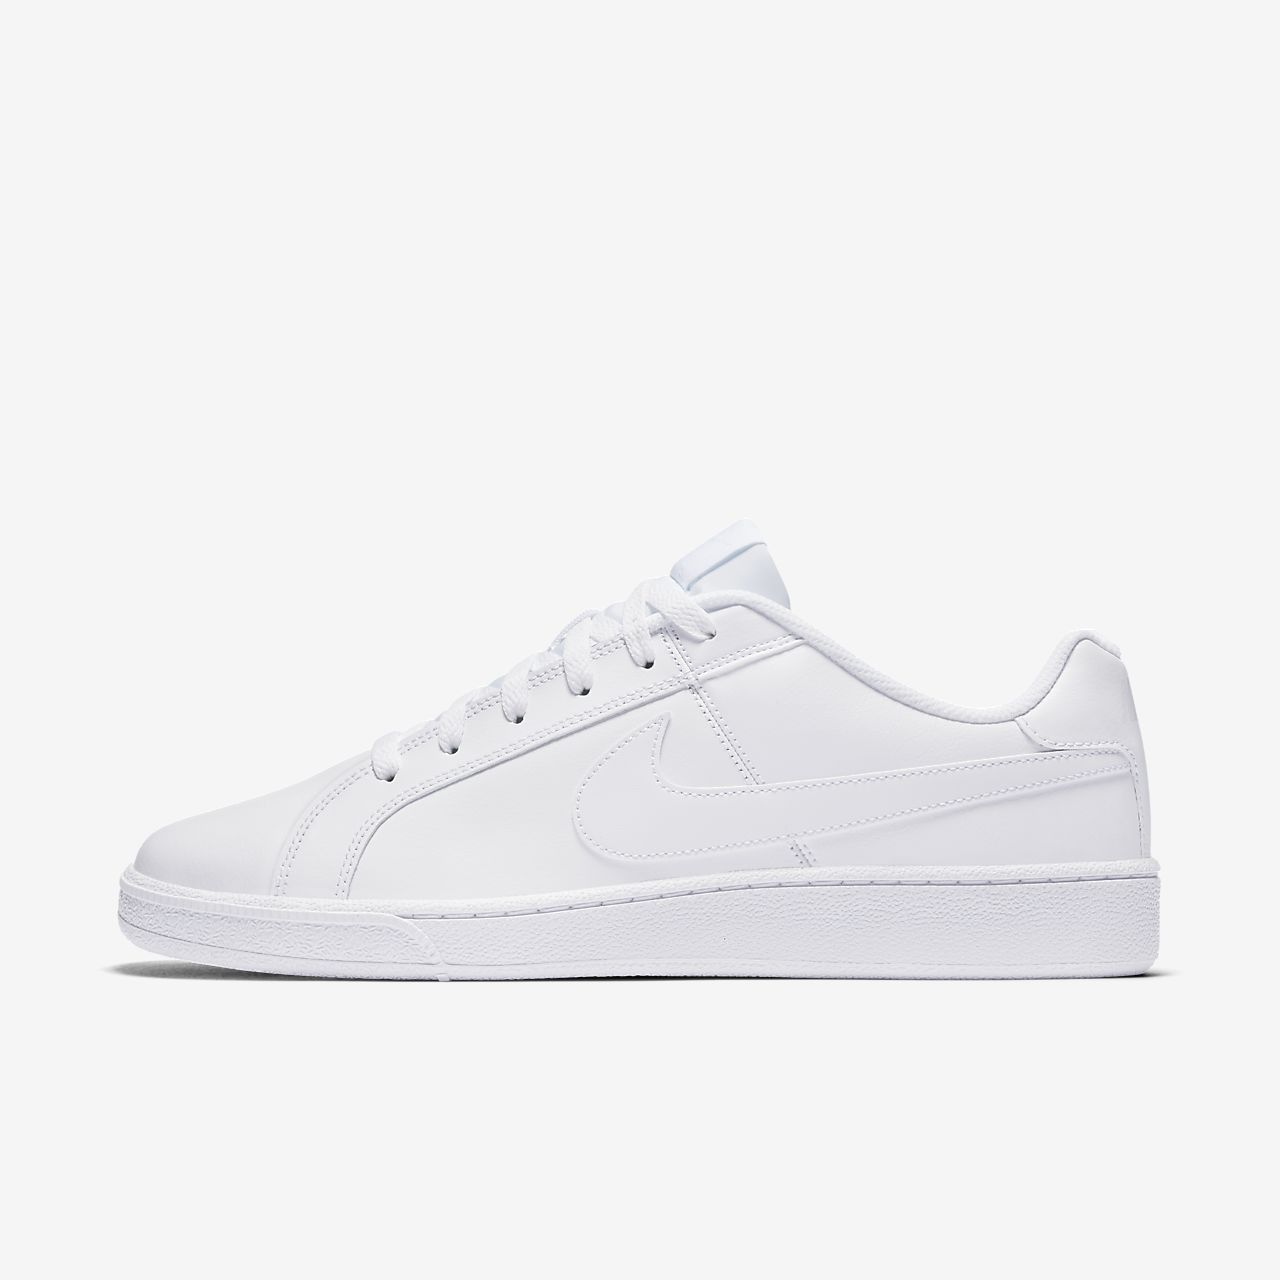 uk availability 6aa0f 0da69 ... Nike Court Royale – sko til mænd